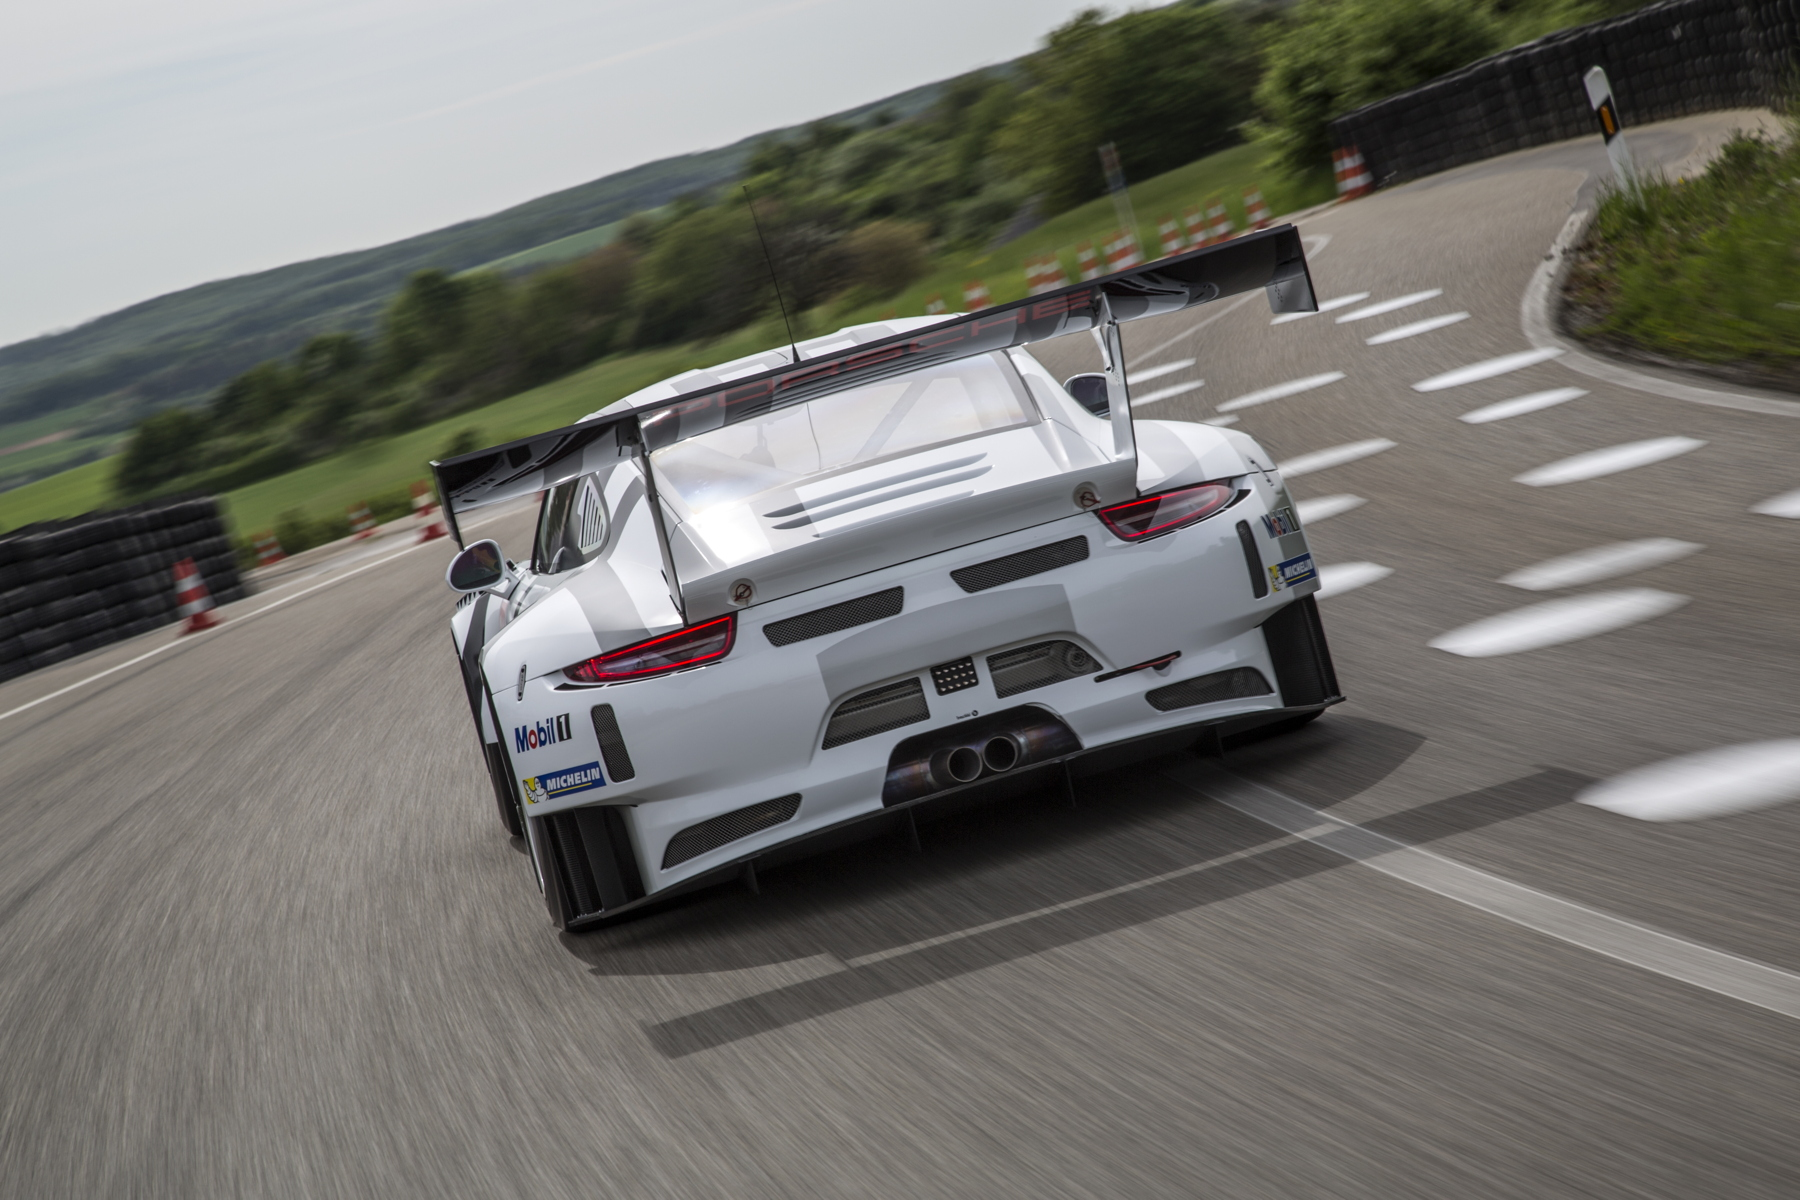 That rear wing will dominate the view of Porsche's competitors in 2016.